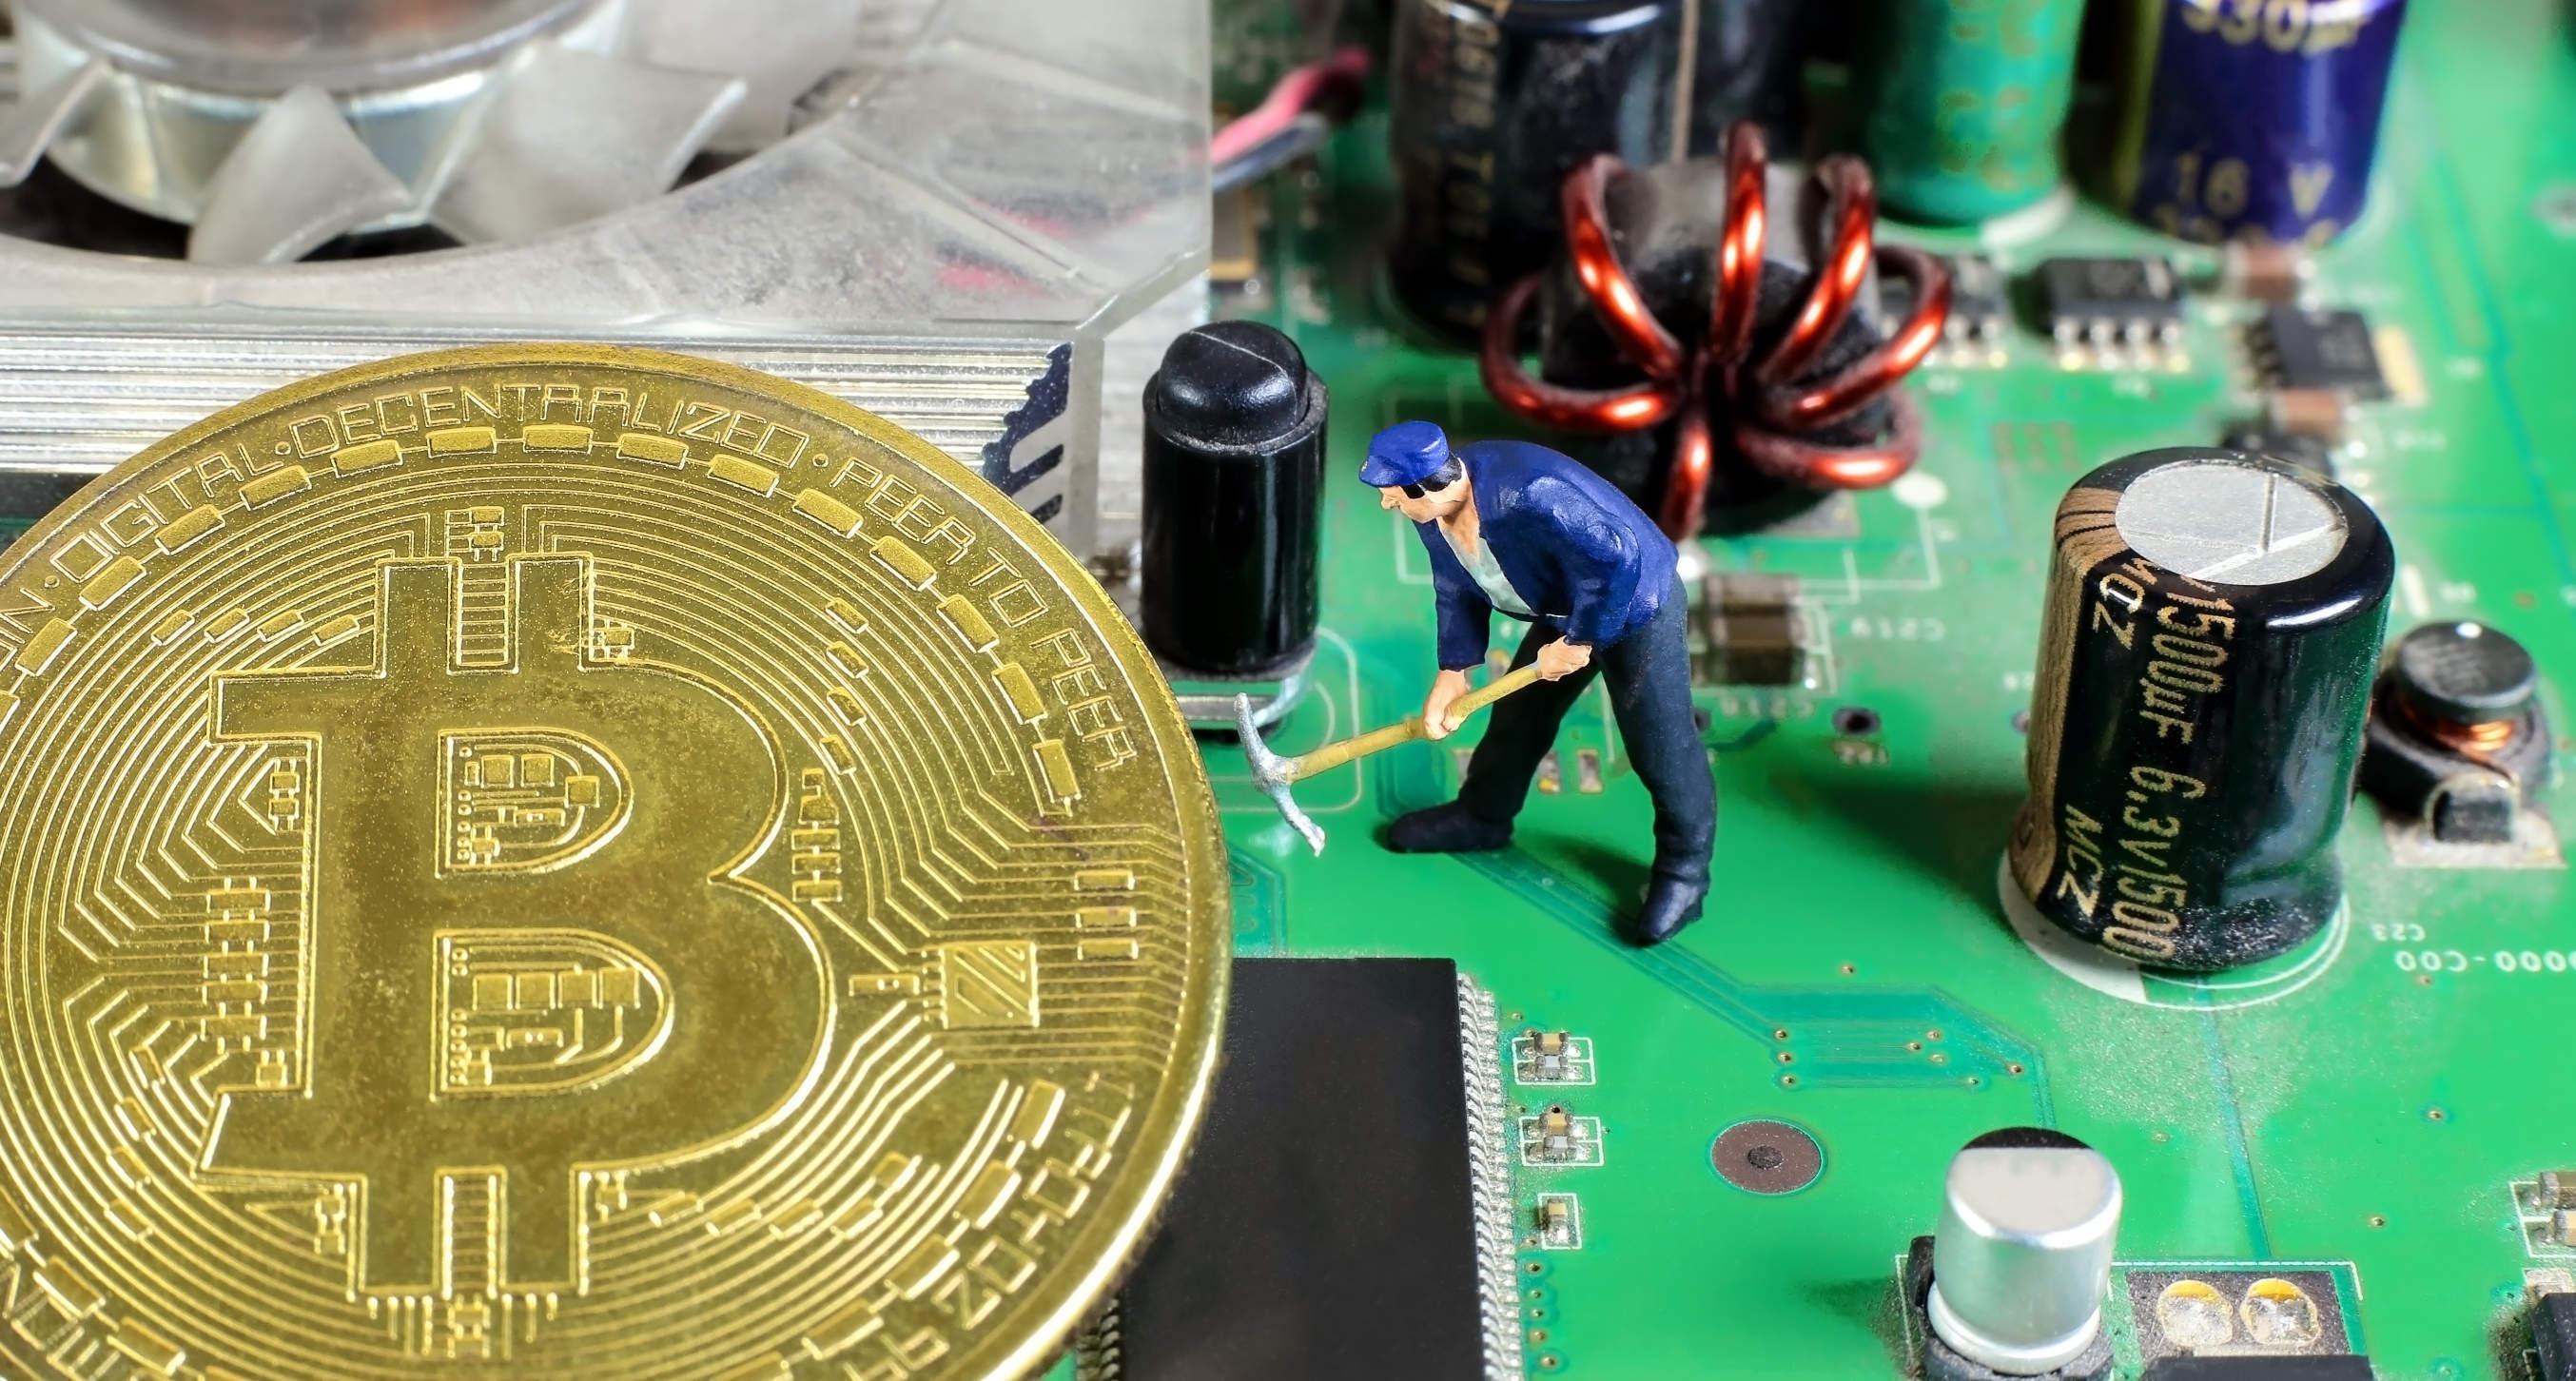 INFOGRAPHIC: Bitcoin's again nearing a record high — here's a brief history of its crashes